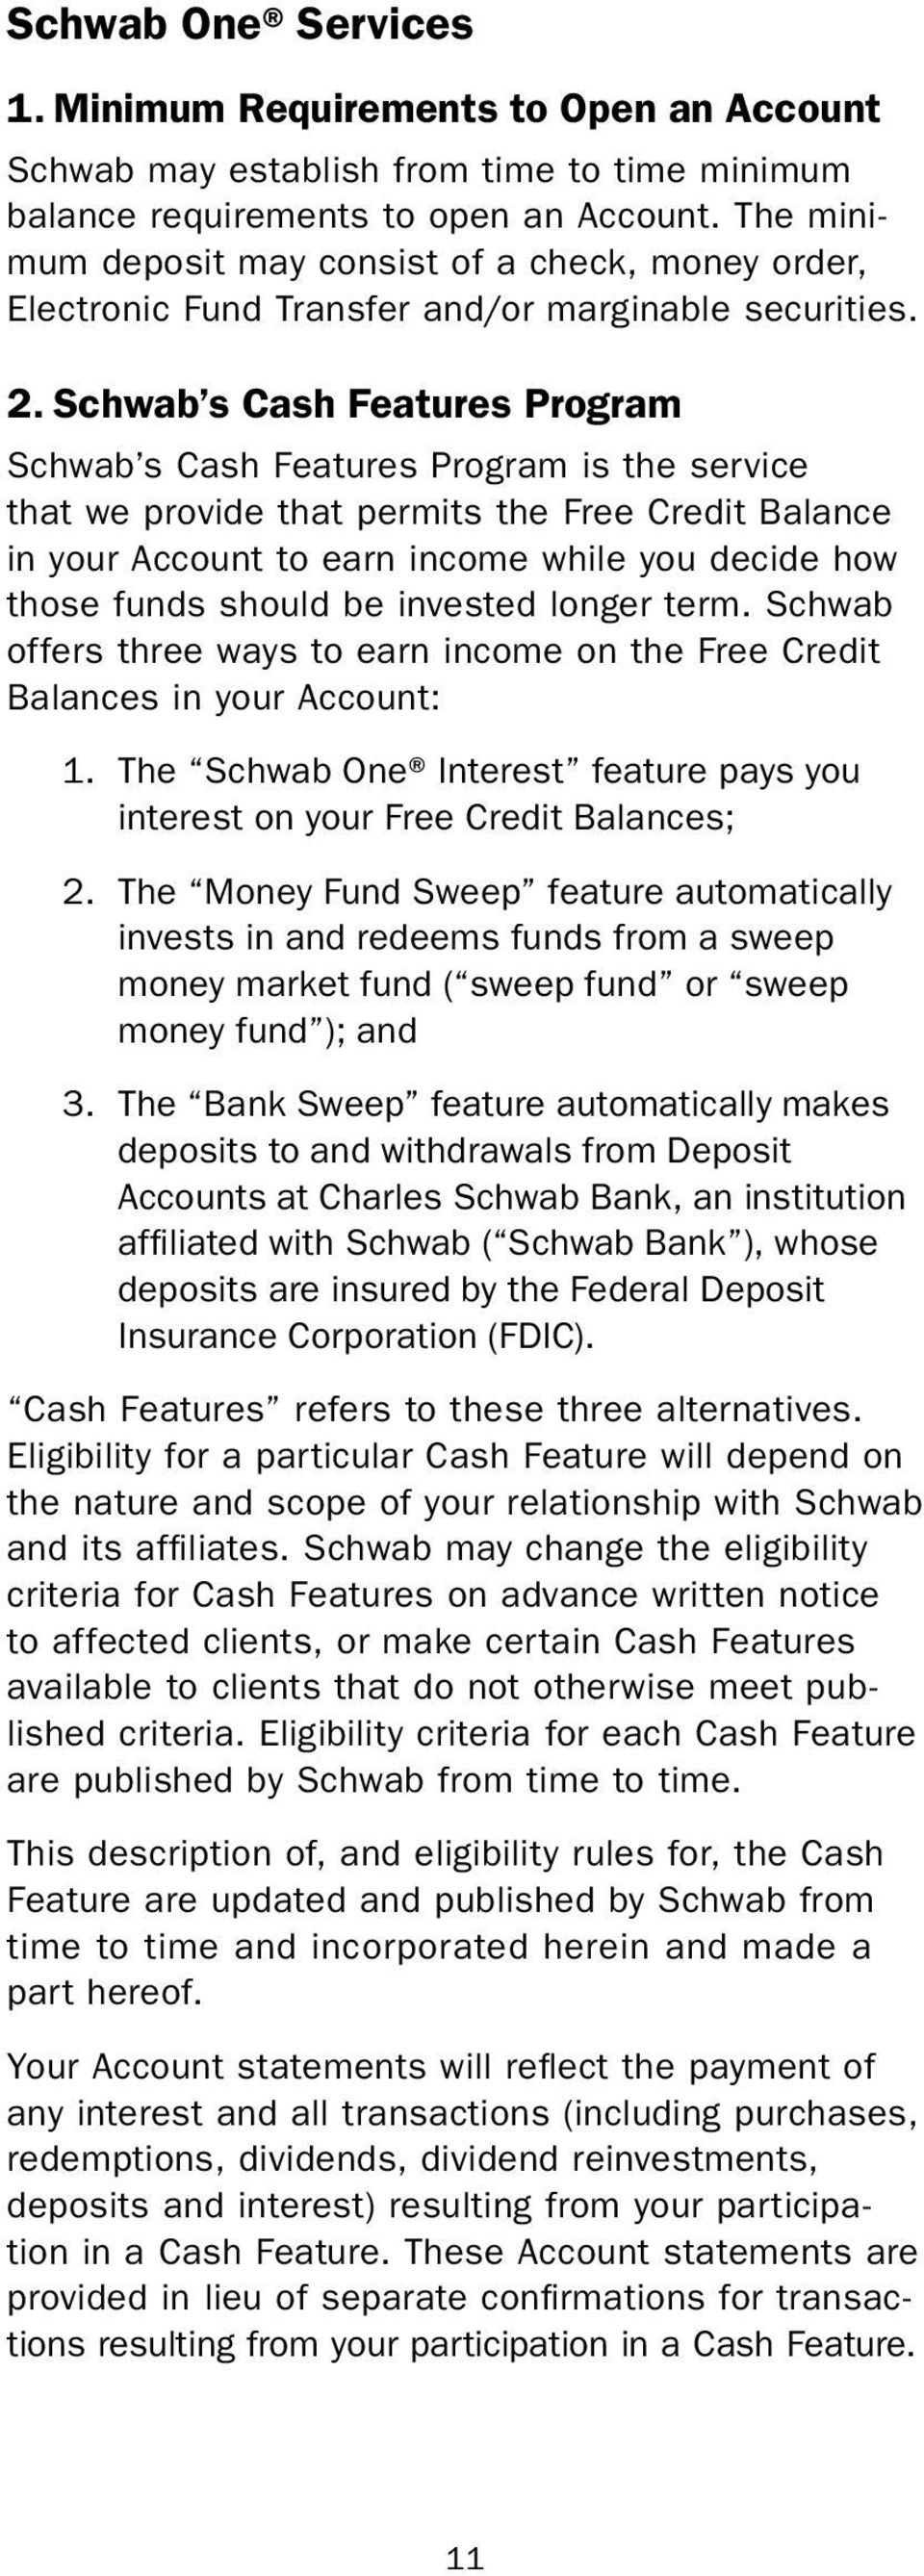 Schwab s Cash Features Program Schwab s Cash Features Program is the service that we provide that permits the Free Credit Balance in your Account to earn income while you decide how those funds